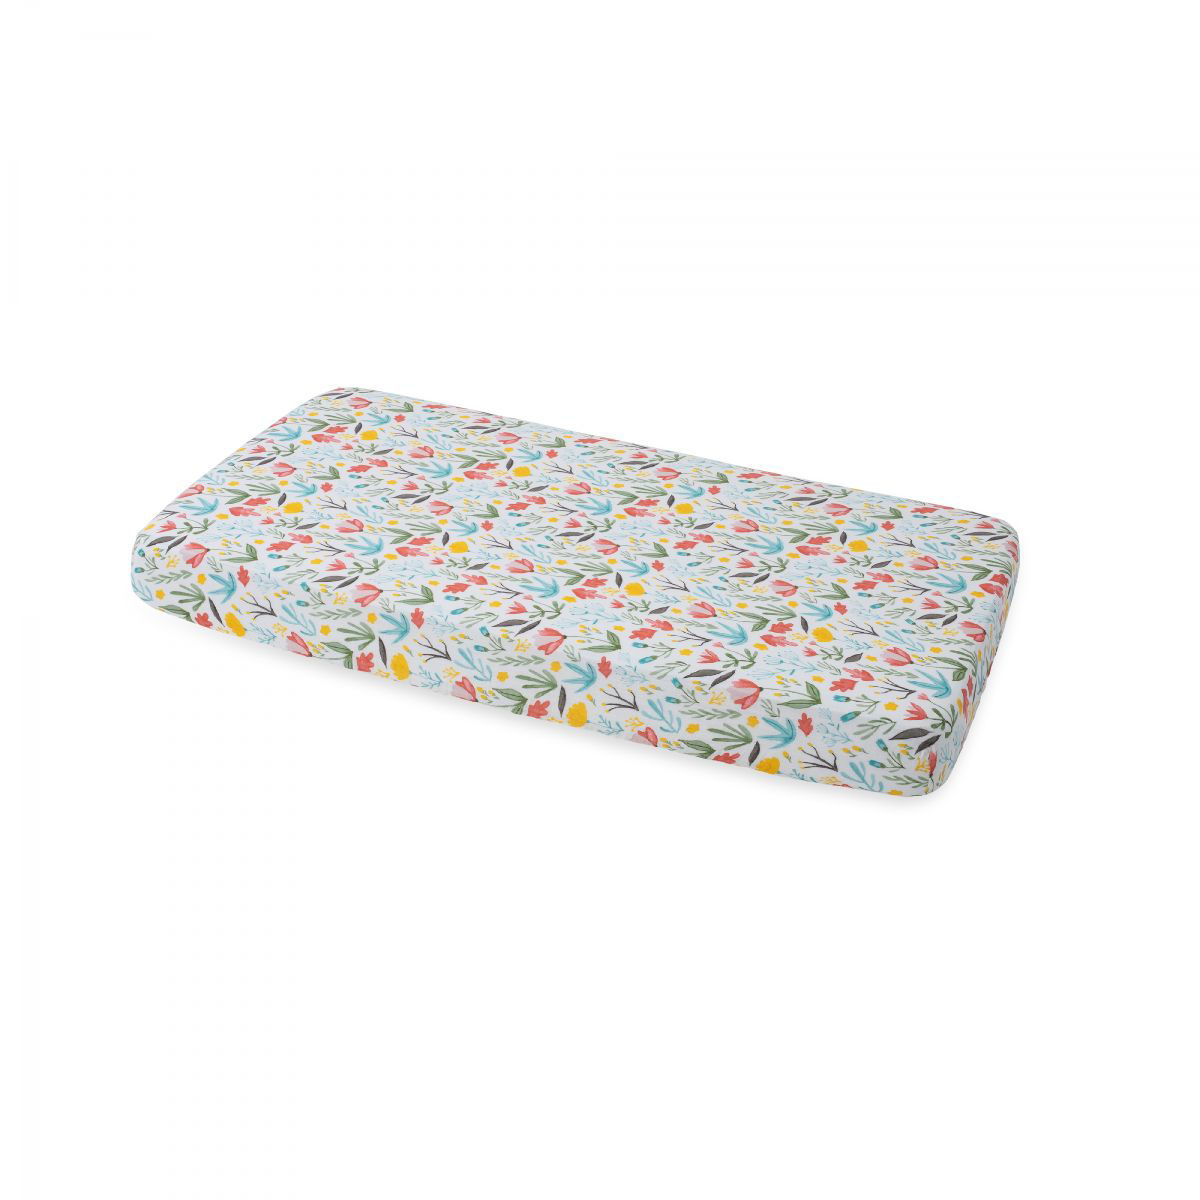 Picture of Cotton Muslin Crib Sheet - Meadow by Little Unicorn